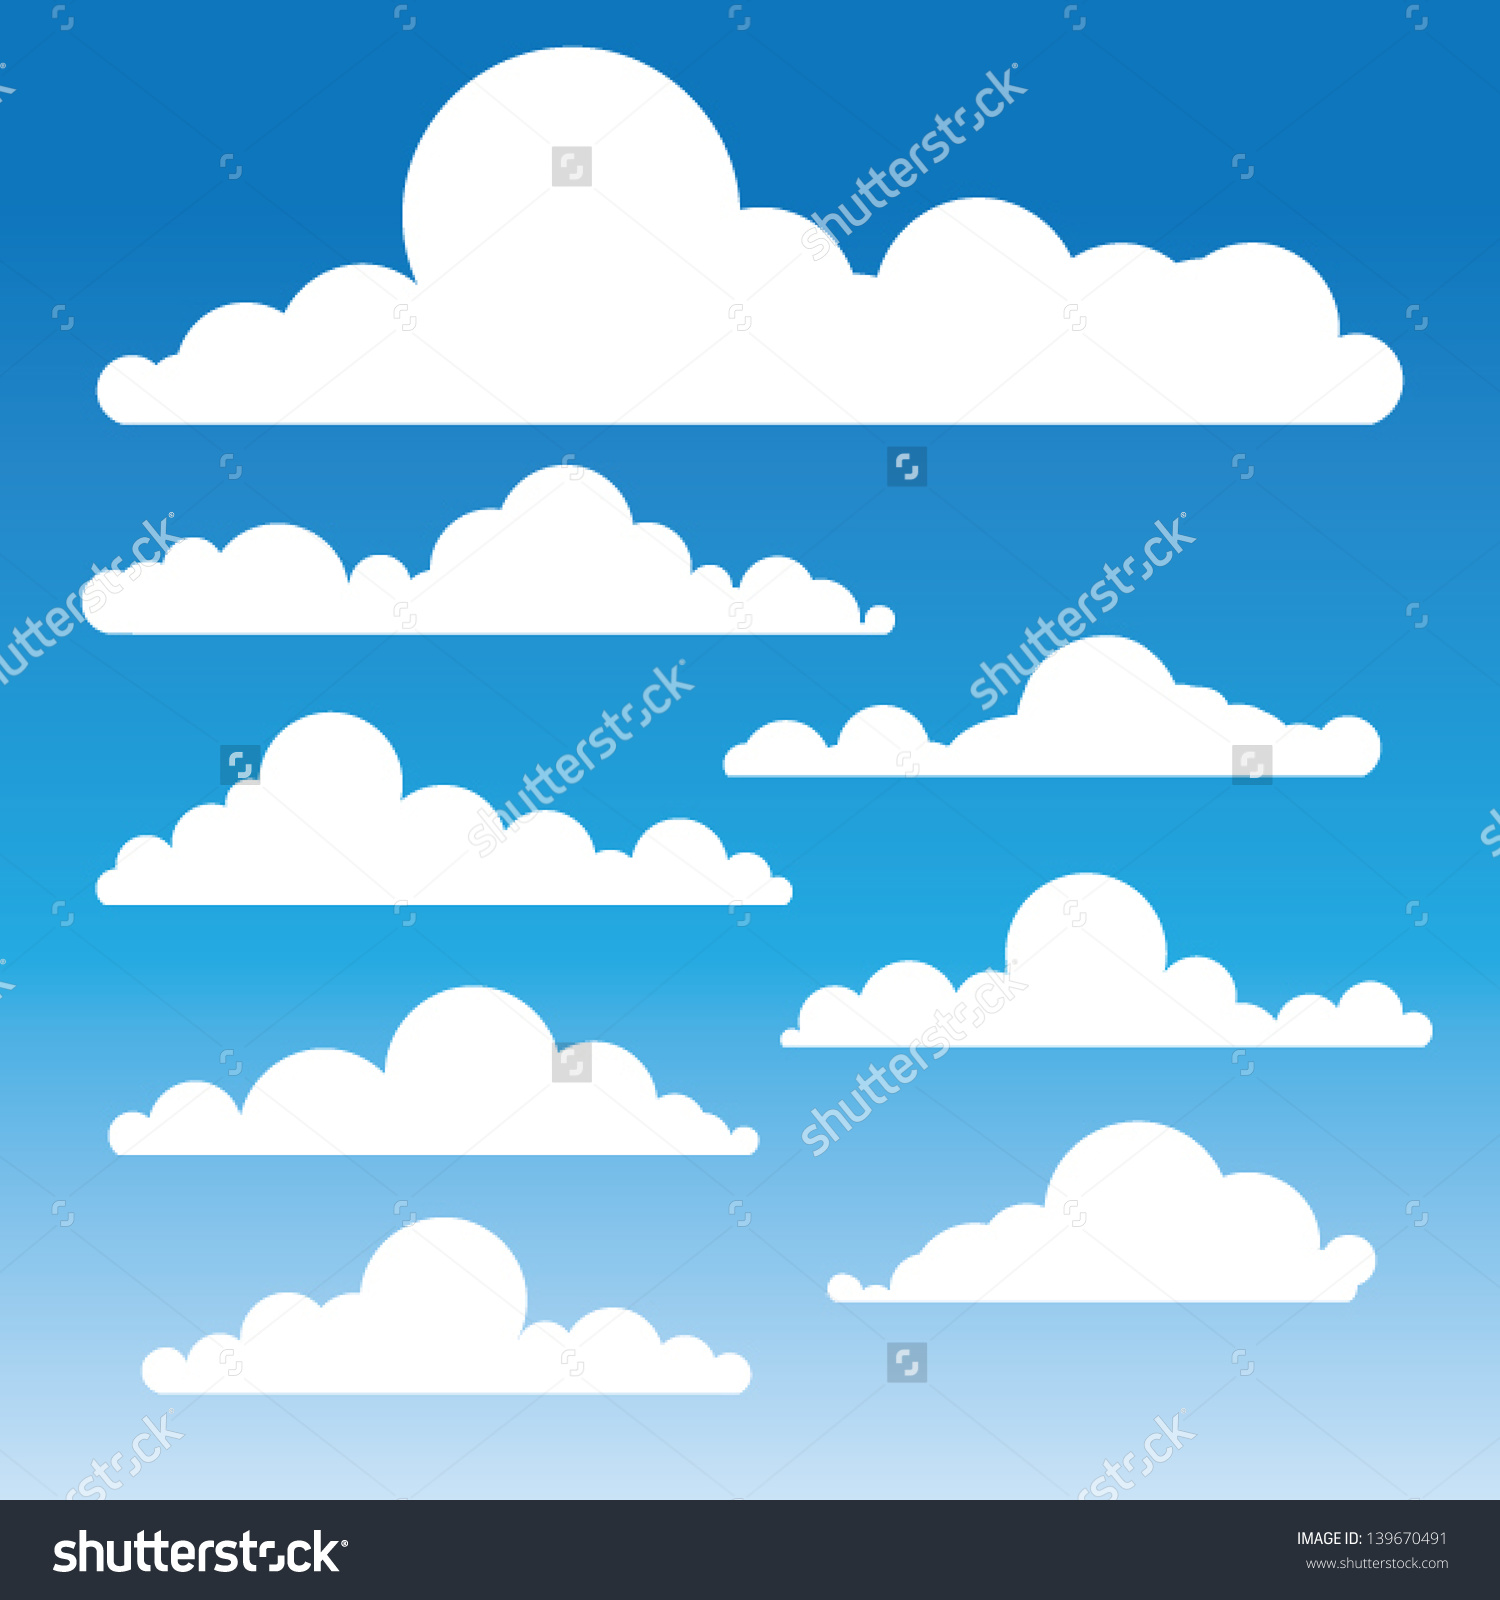 clouds silhouette clipart